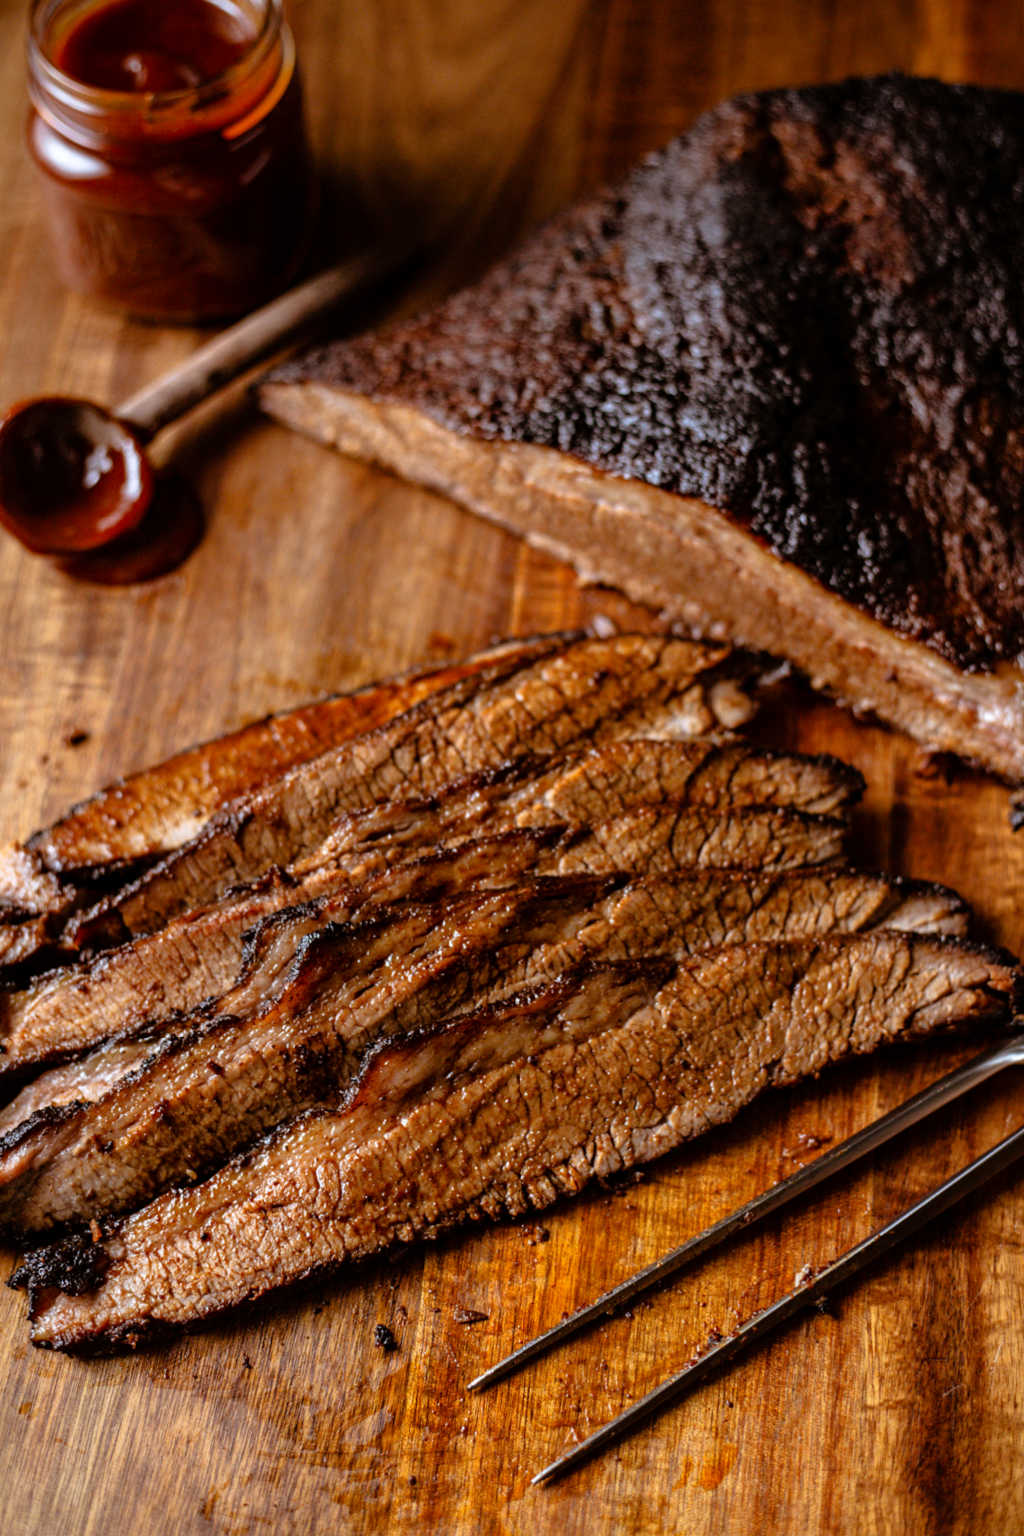 smoked beef brisket slices on a wooden board with a jar of bbq sauce.